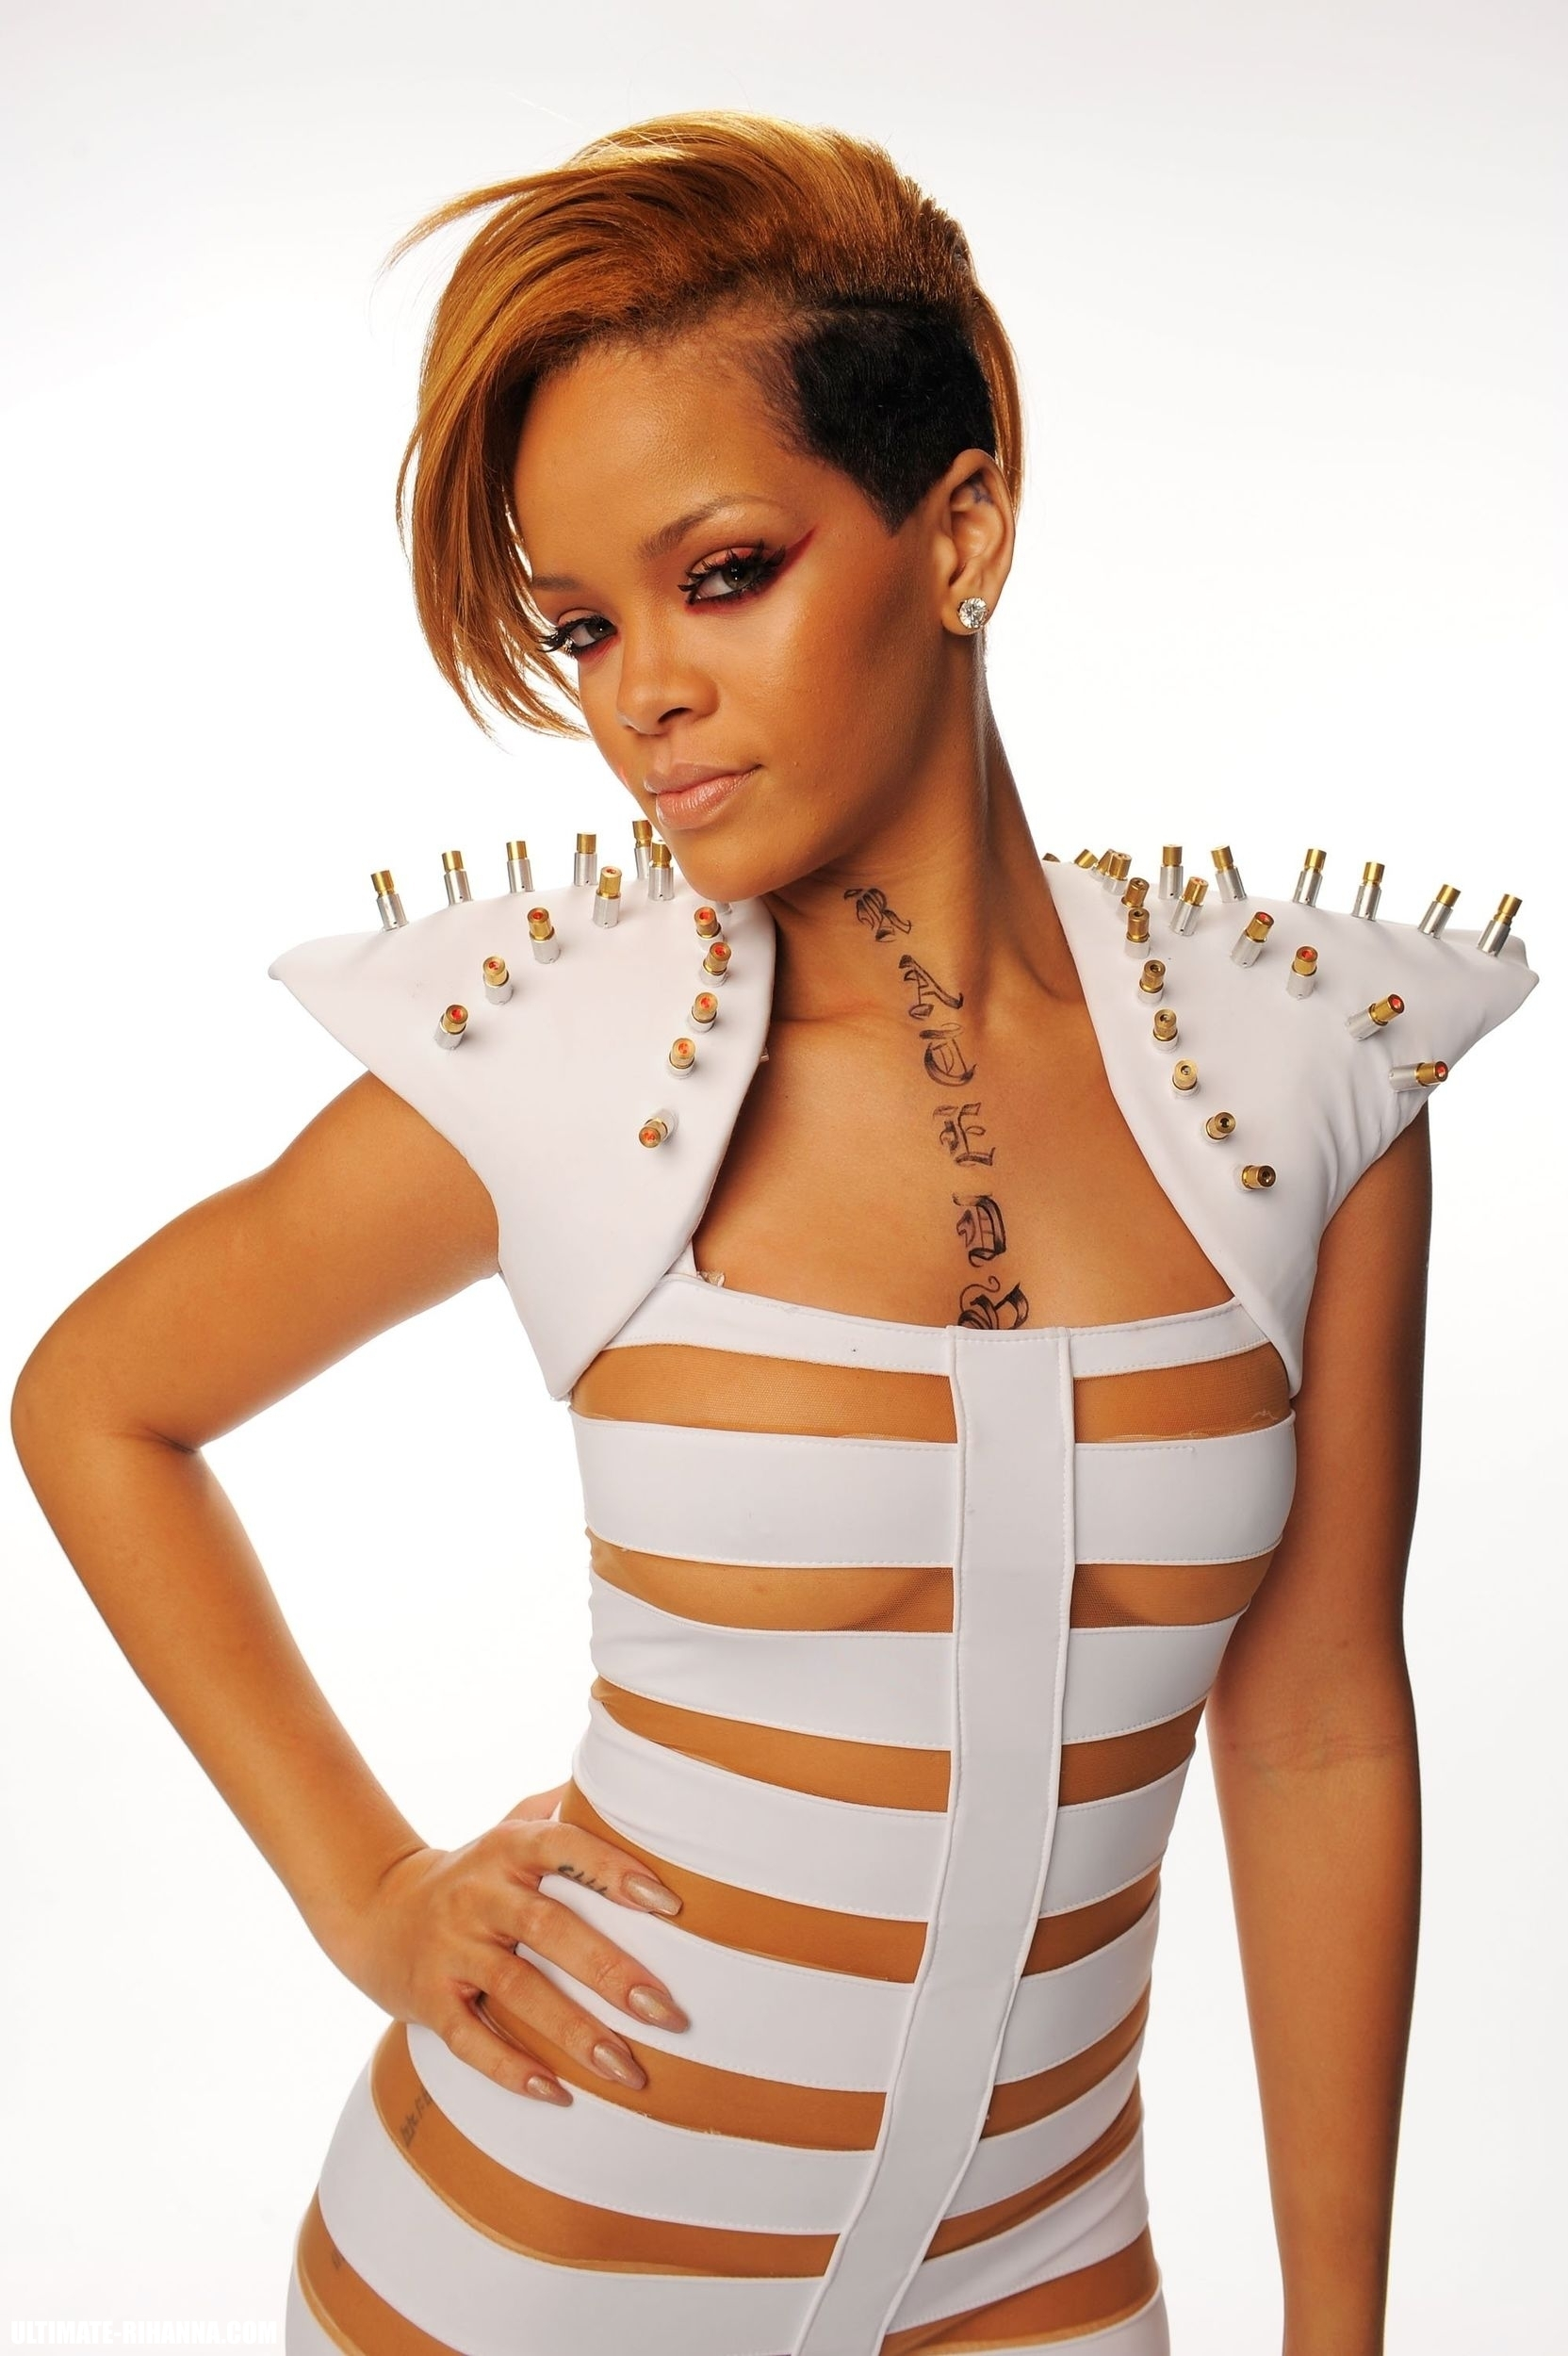 Rihanna - Rihanna Photo (9460060) - Fanpop